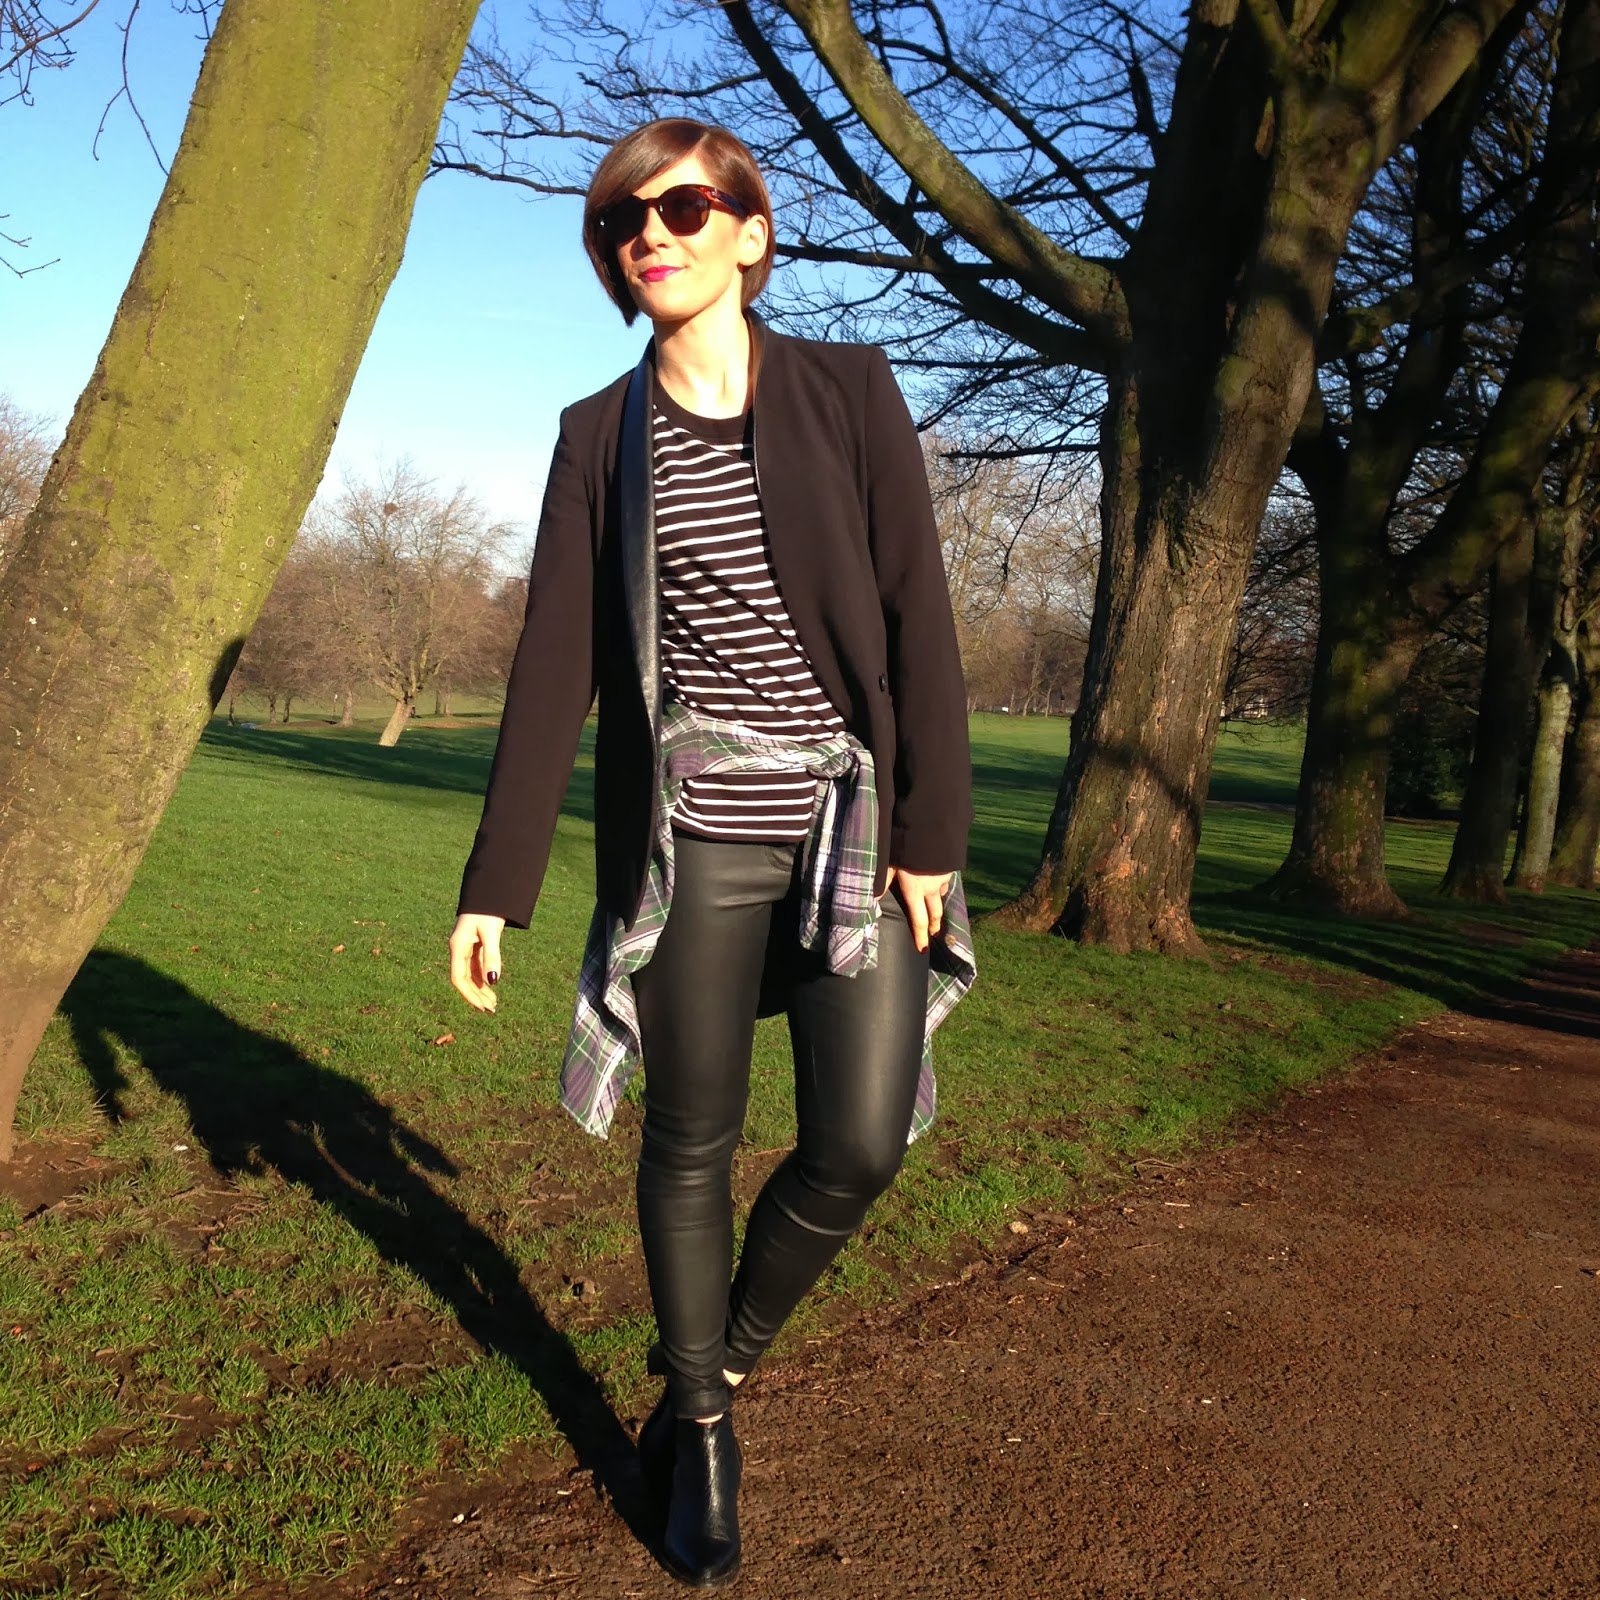 Zara Top Lucy Higgins Blog Blogger Girlabouttown Girl About Town Fashion